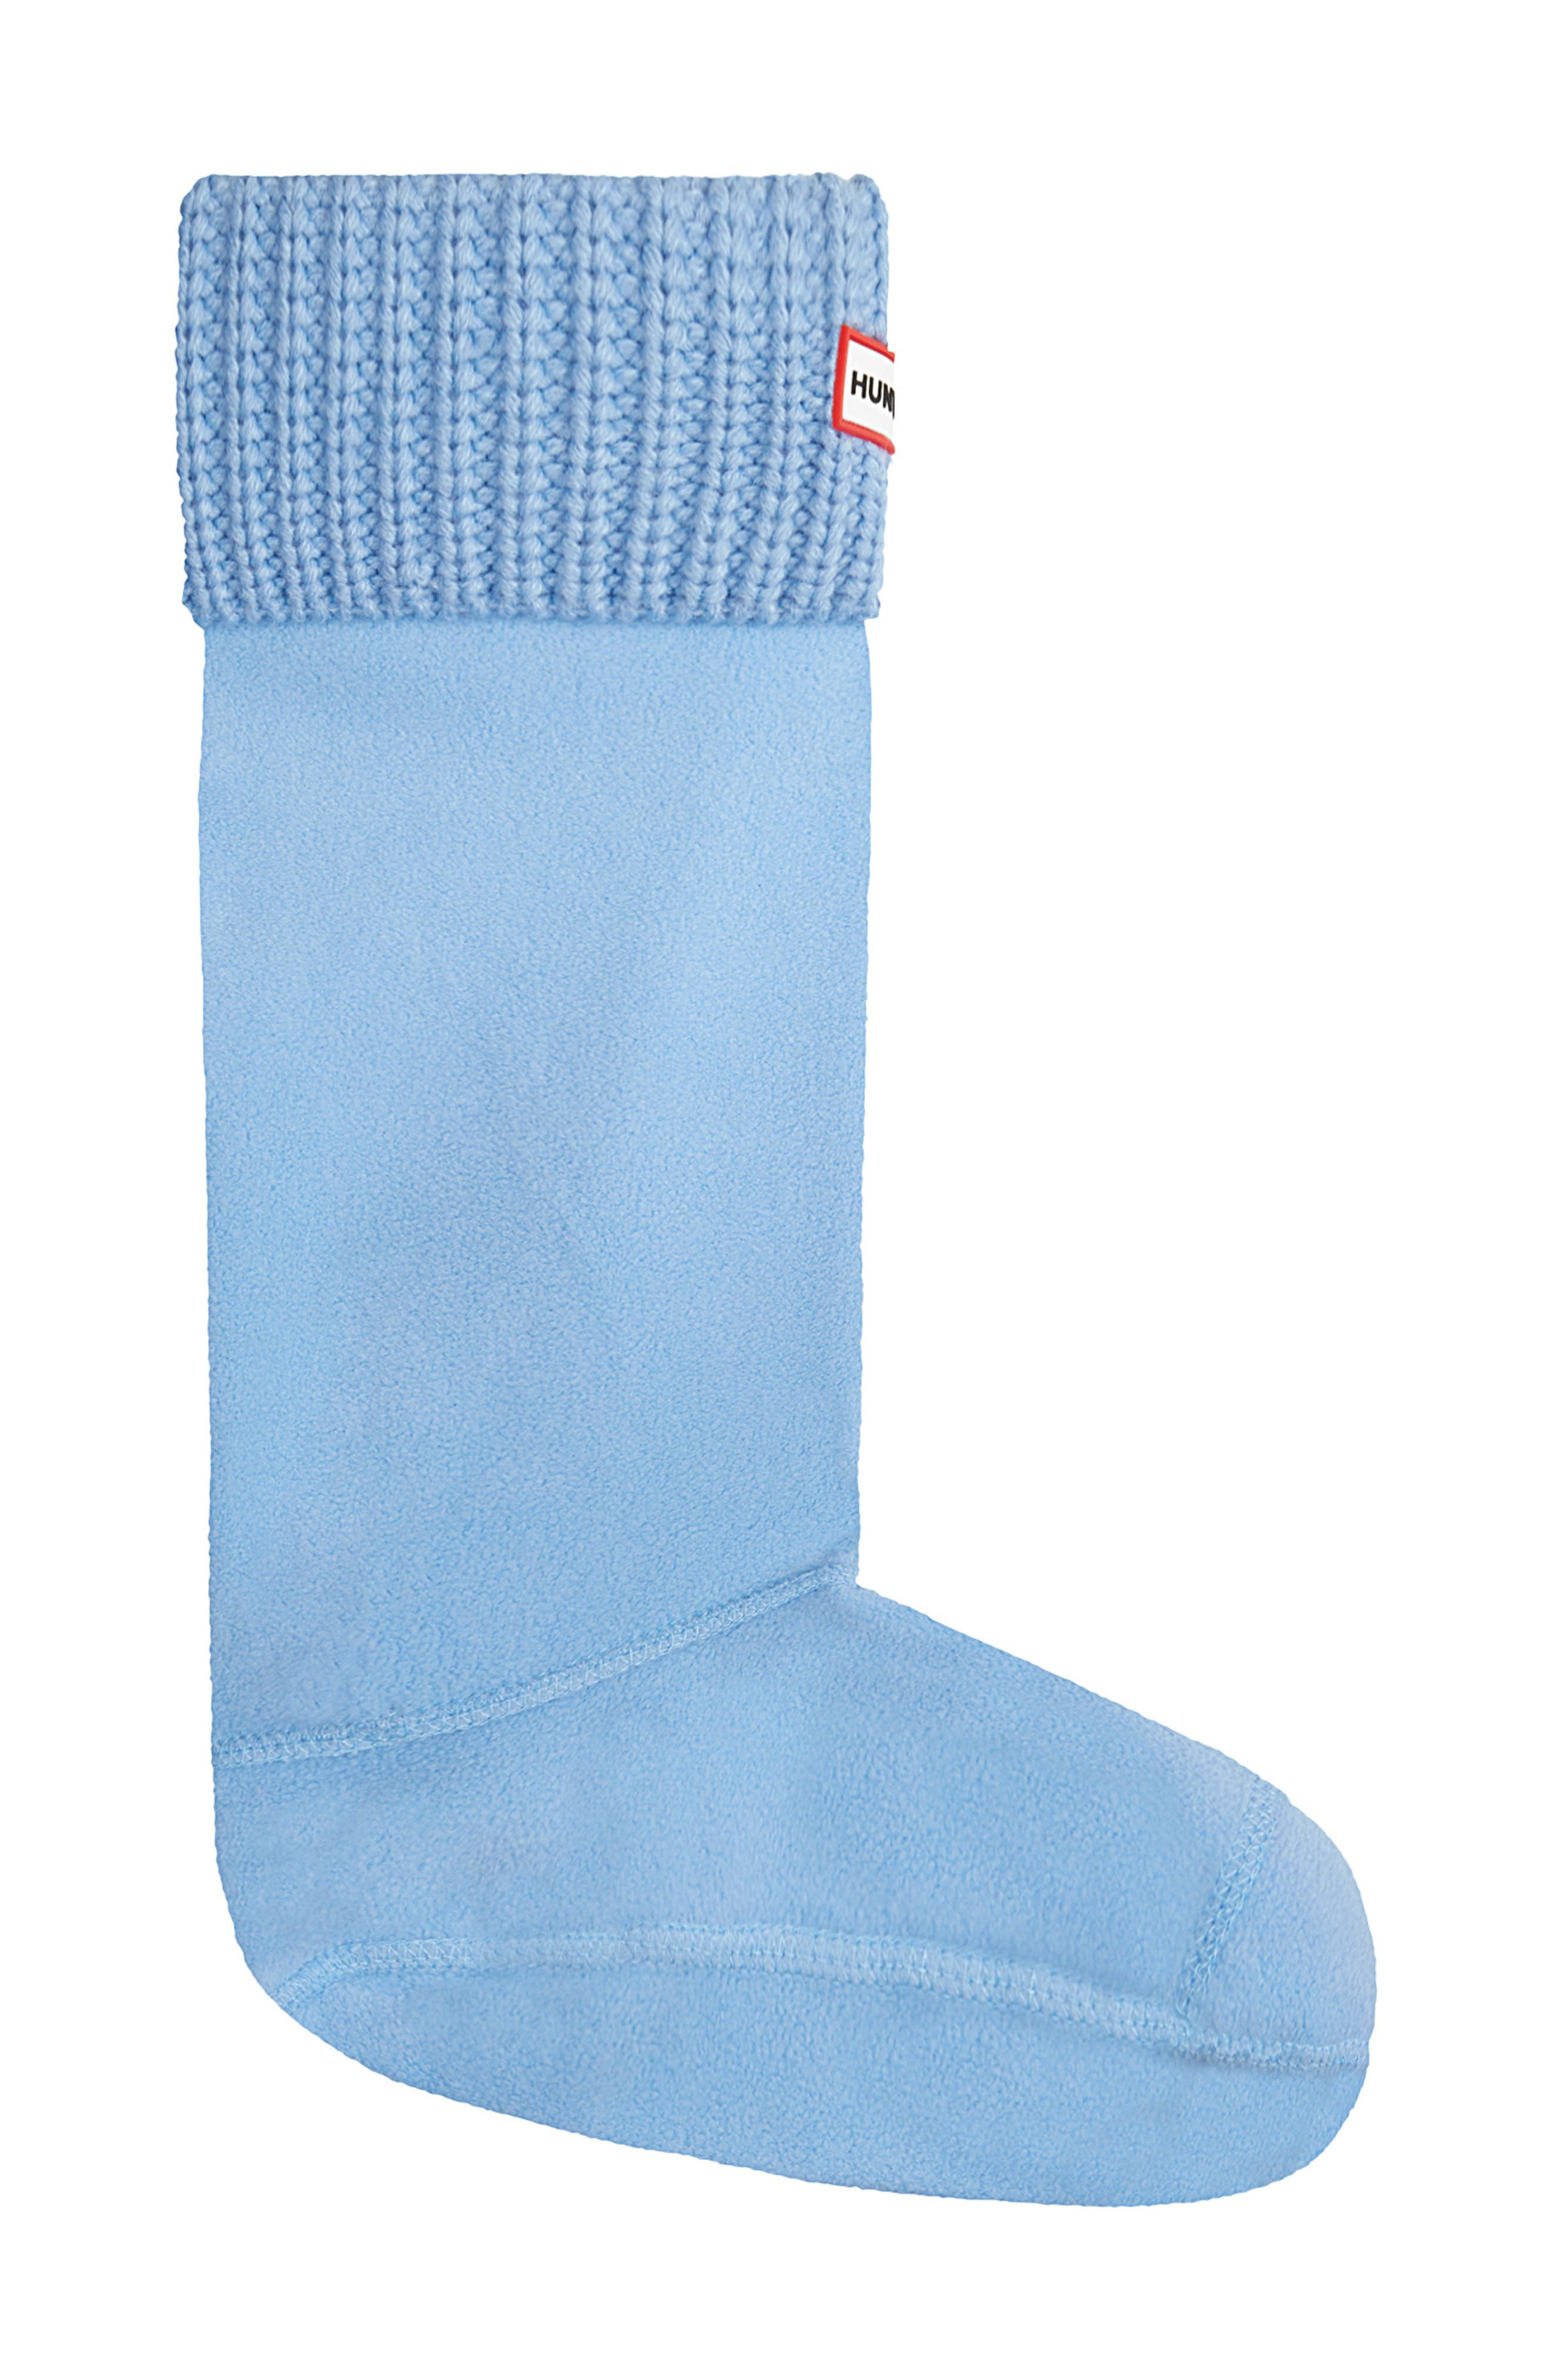 Tall Cardigan Knit Cuff Welly Boot Socks,                         Main,                         color, 418